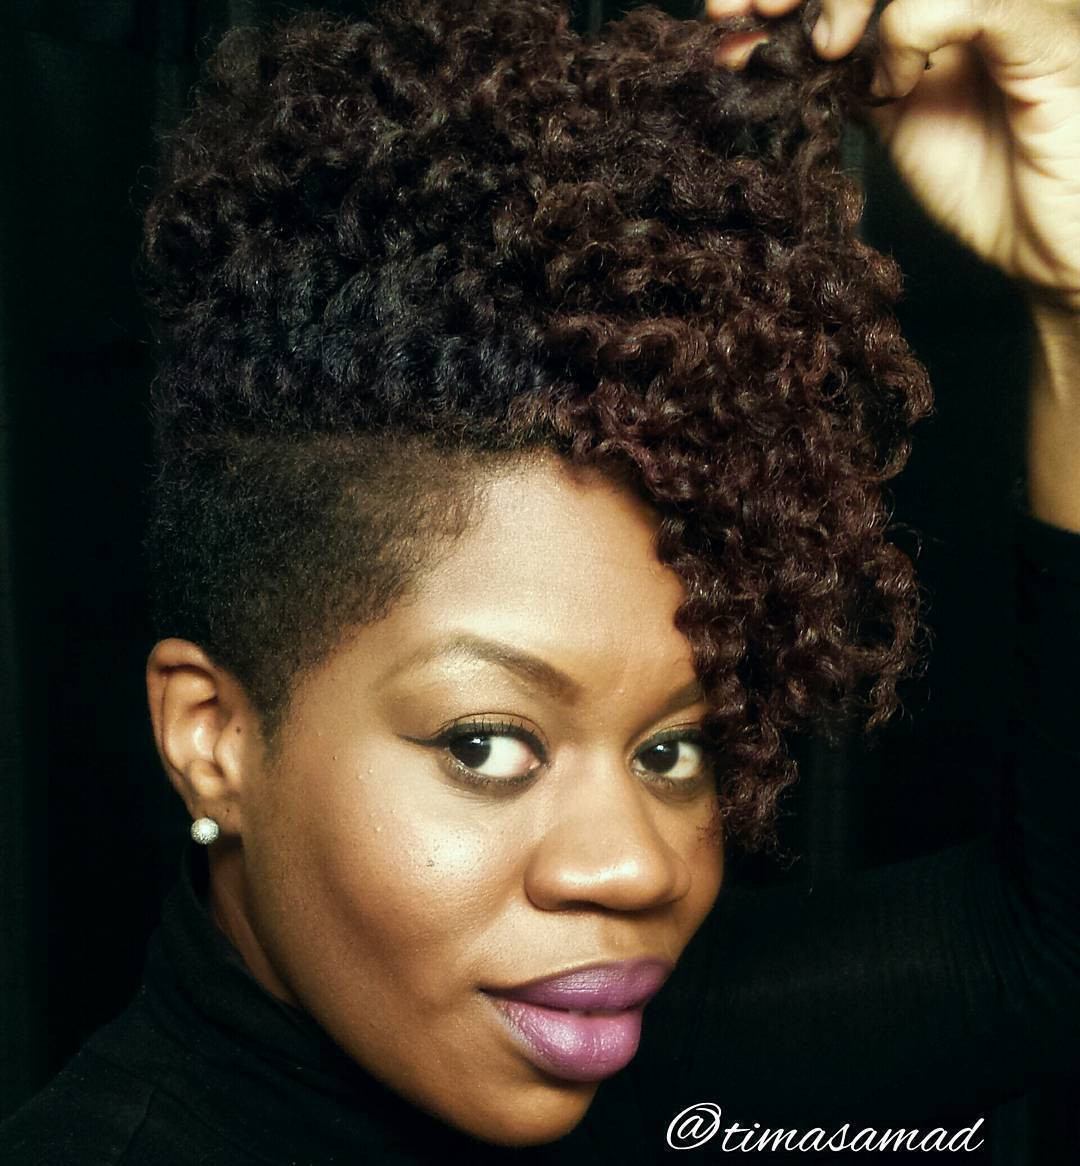 Best ideas about Cute African American Hairstyles . Save or Pin 40 Cute Tapered Natural Hairstyles for Afro Hair Now.